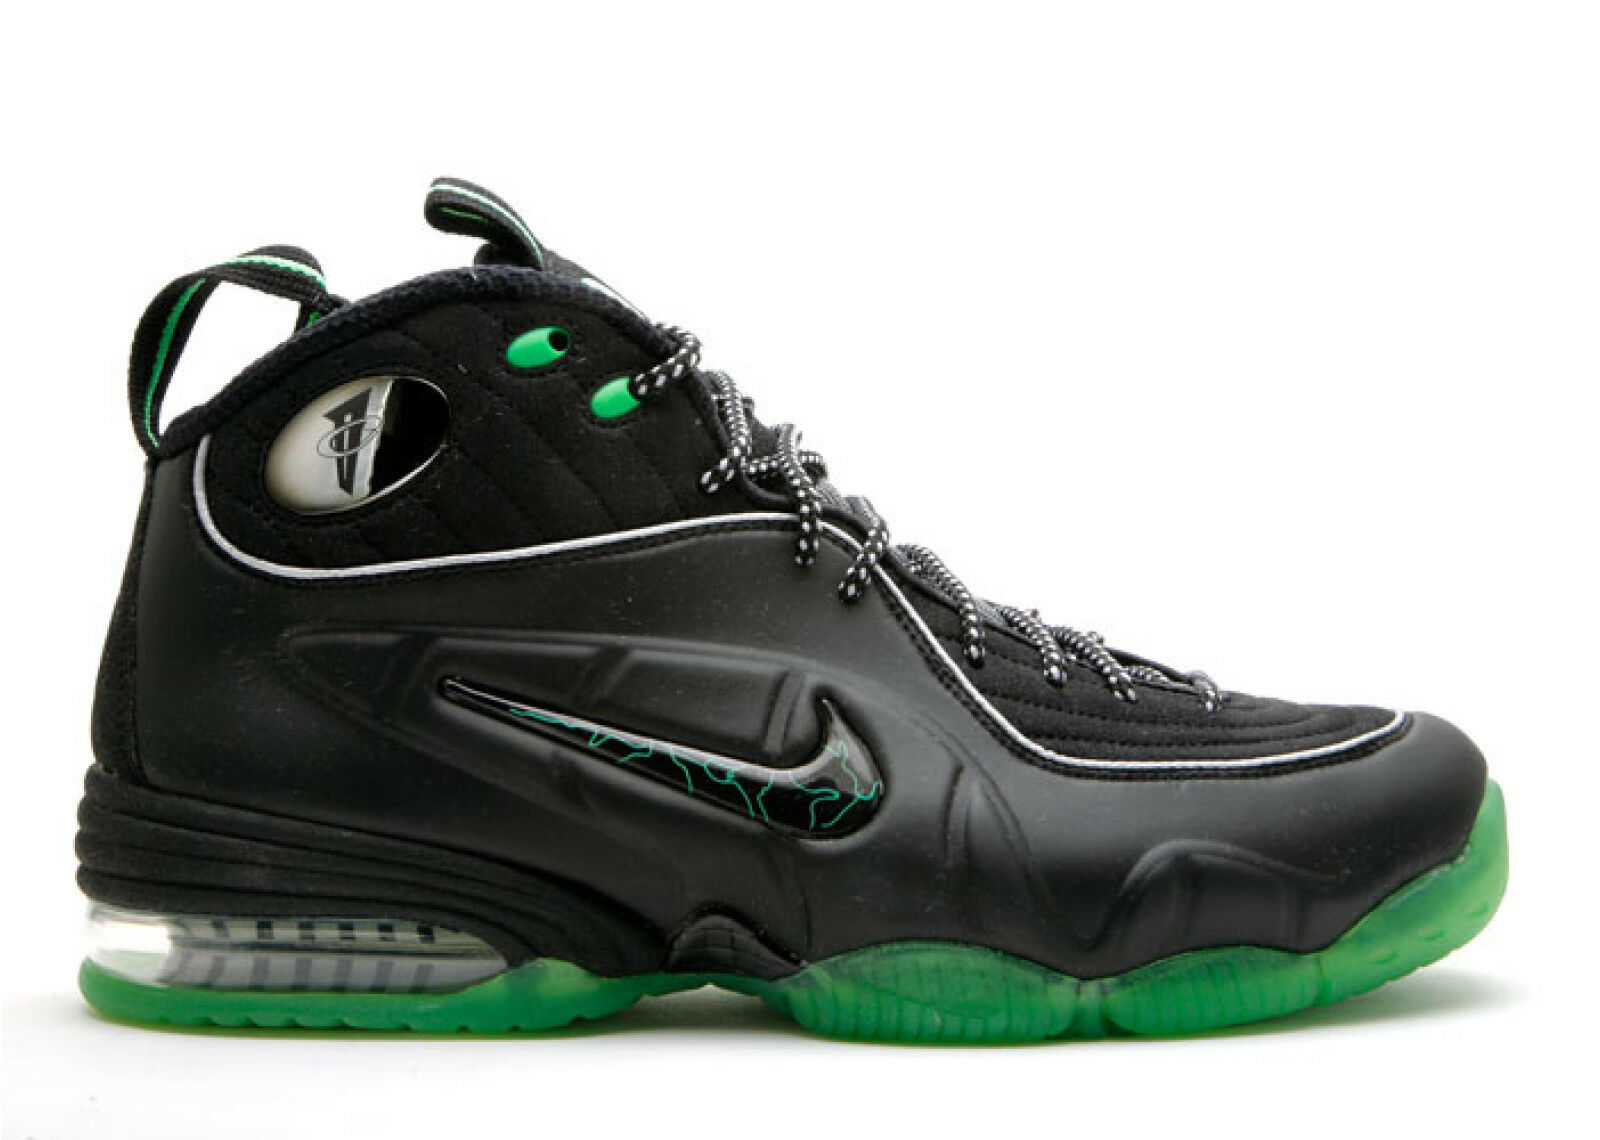 708fde13f585 2009 Nike Air Penny Hardaway 1 2 Half Cent Black 344646-002 US 9 Green  nztsqv10107-Athletic Shoes